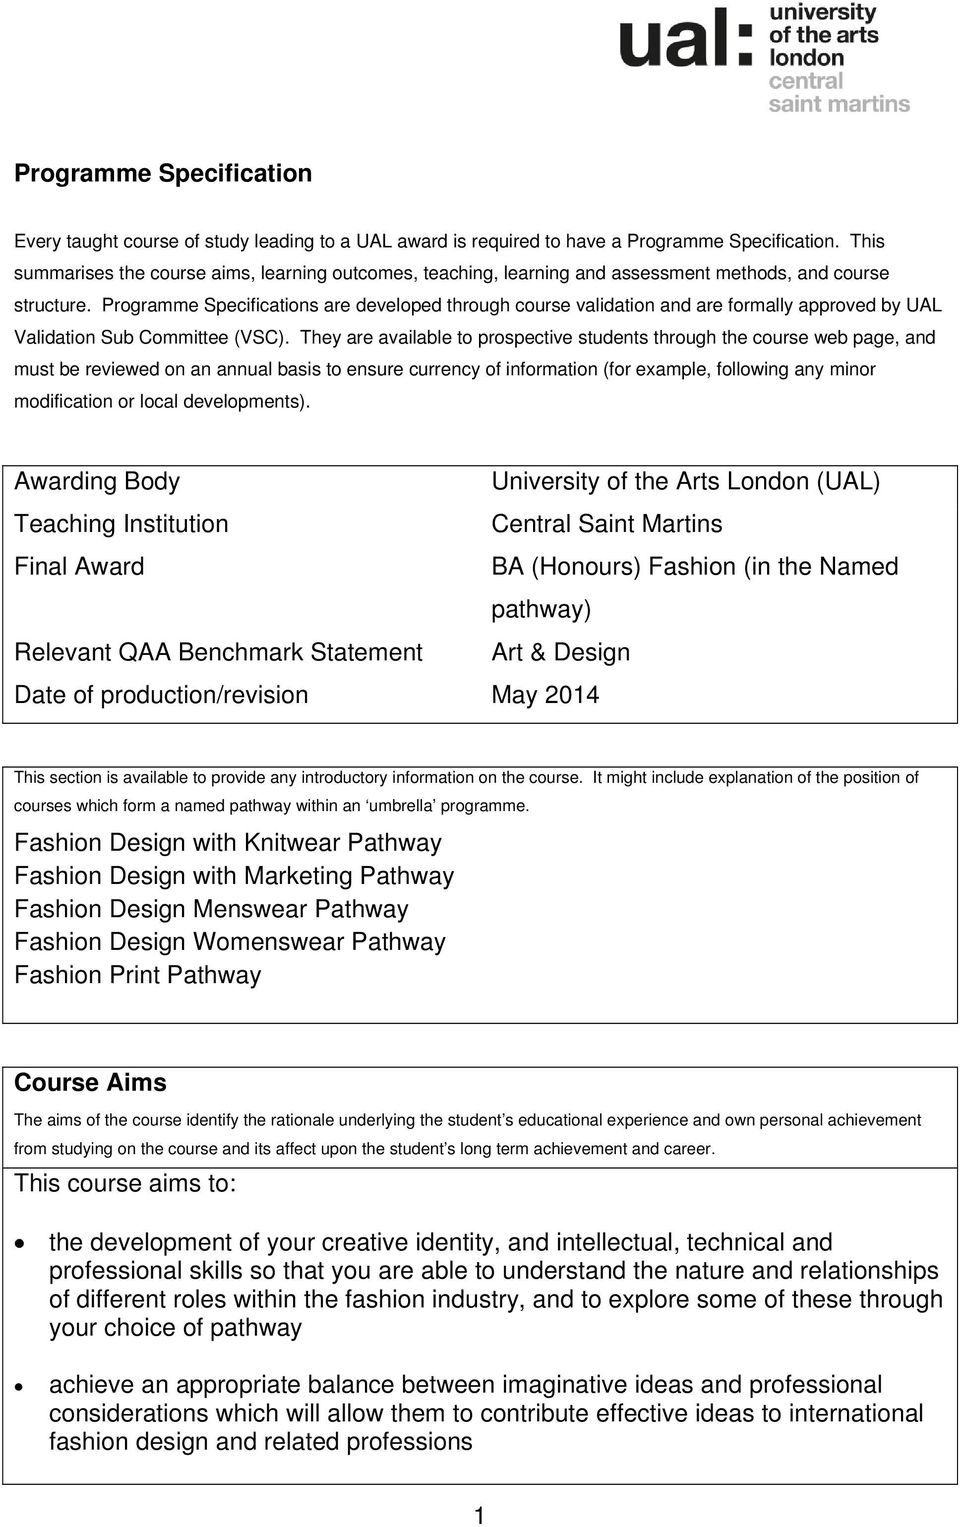 University Of The Arts London Ual Pdf Free Download